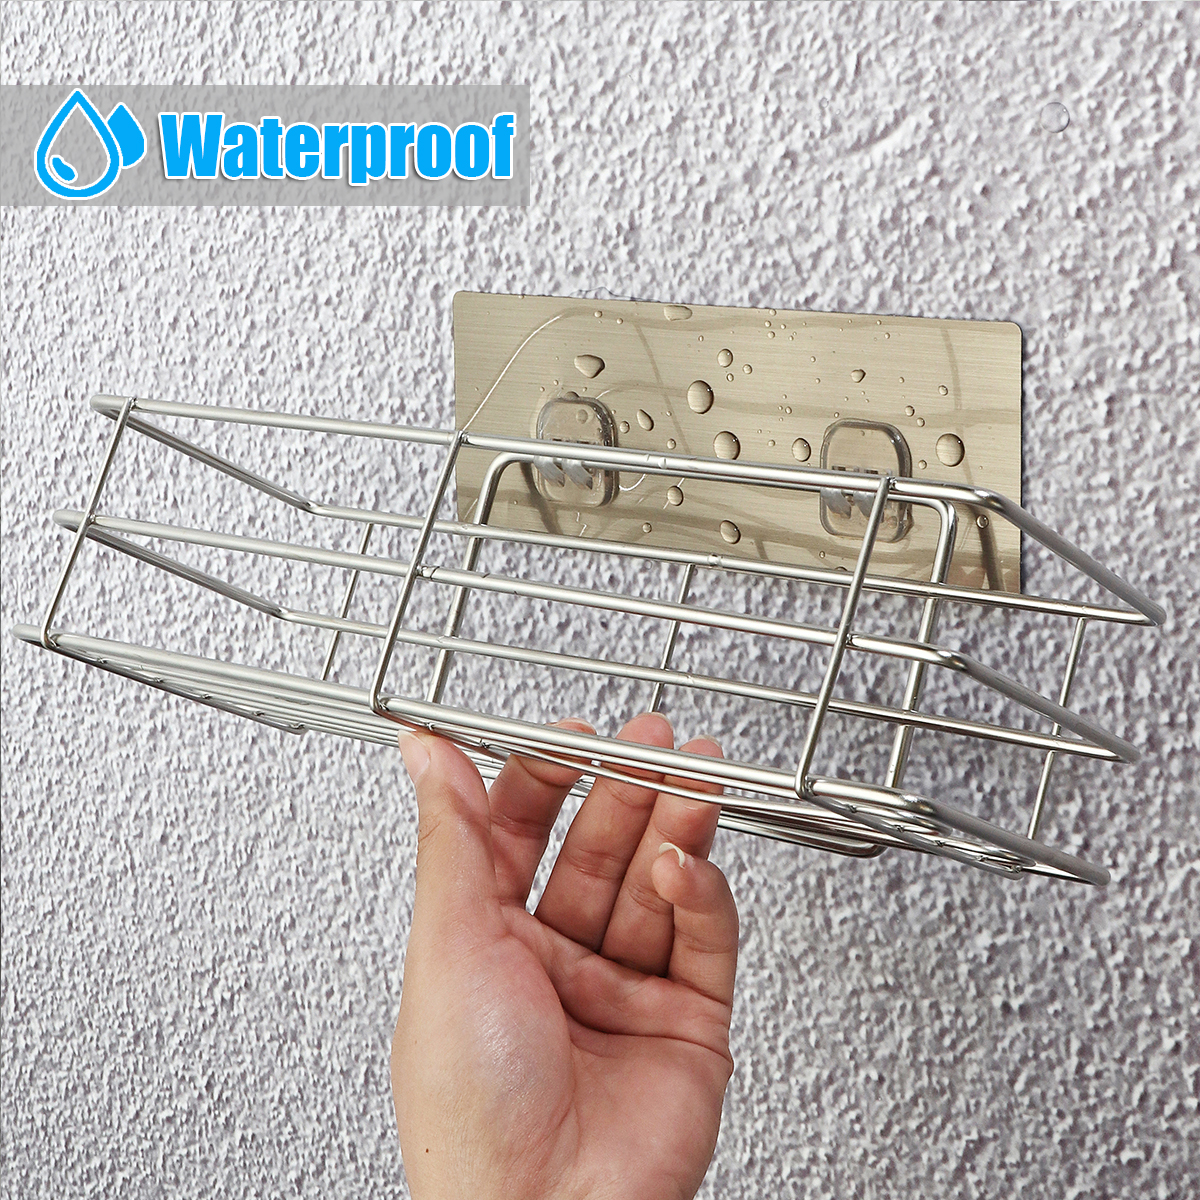 Shower Storage Shelf Rack Organizer Wall Bathroom Kitchen Caddy Basket Holder Easy Installation for Home Silver Hollow LoadingShower Storage Shelf Rack Organizer Wall Bathroom Kitchen Caddy Basket Holder Easy Installation for Home Silver Hollow Loading